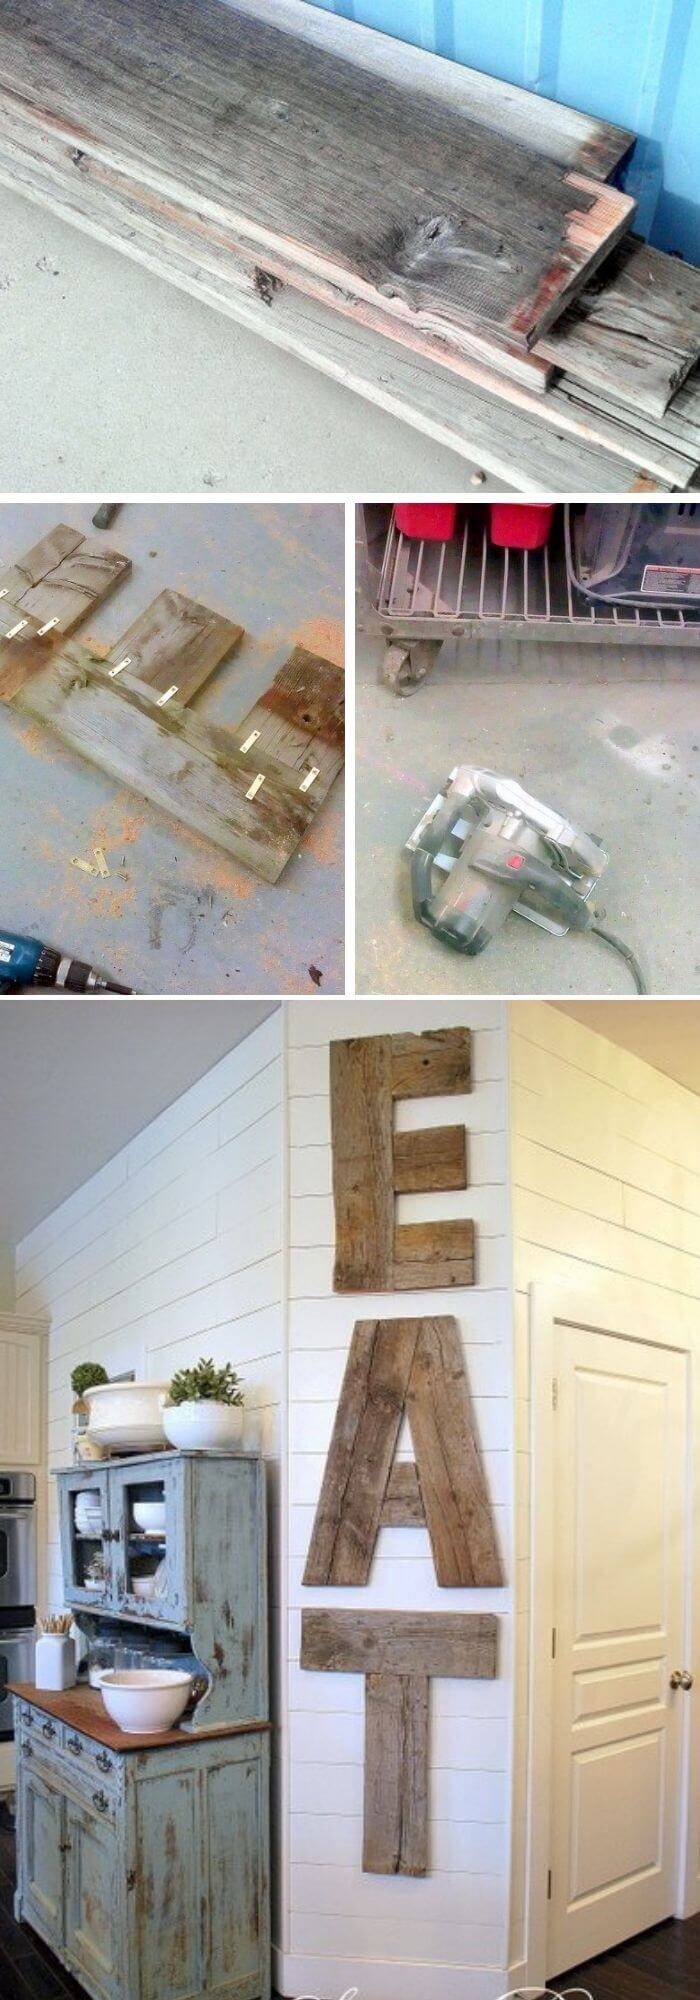 Kitchen Decor Projects With Reclaimed Wood EAT letters from reclaimed lumber